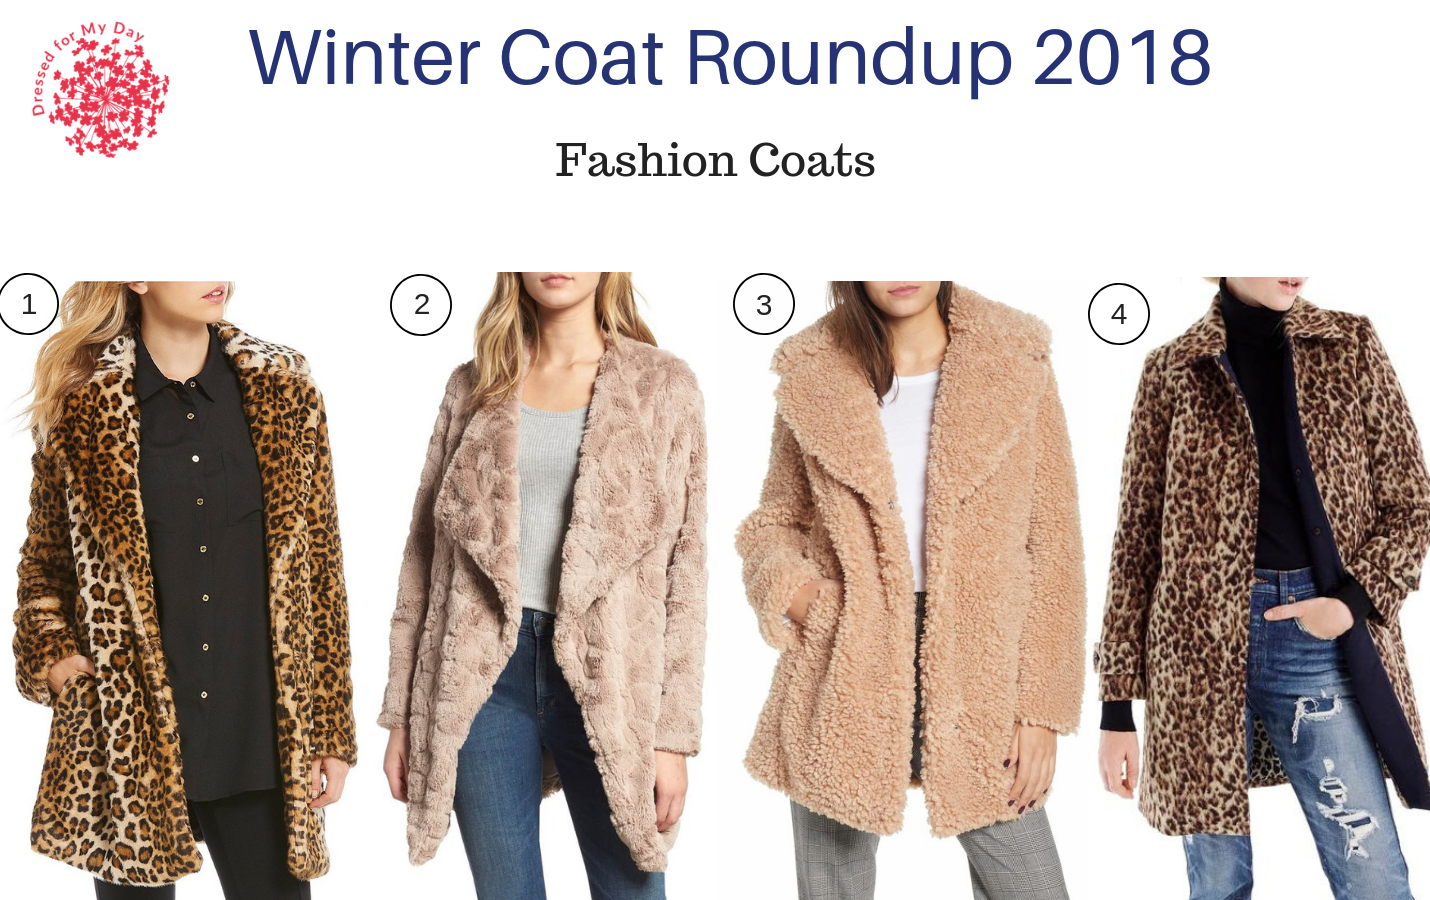 Winter Coat Roundup 2018 Fashion Coats